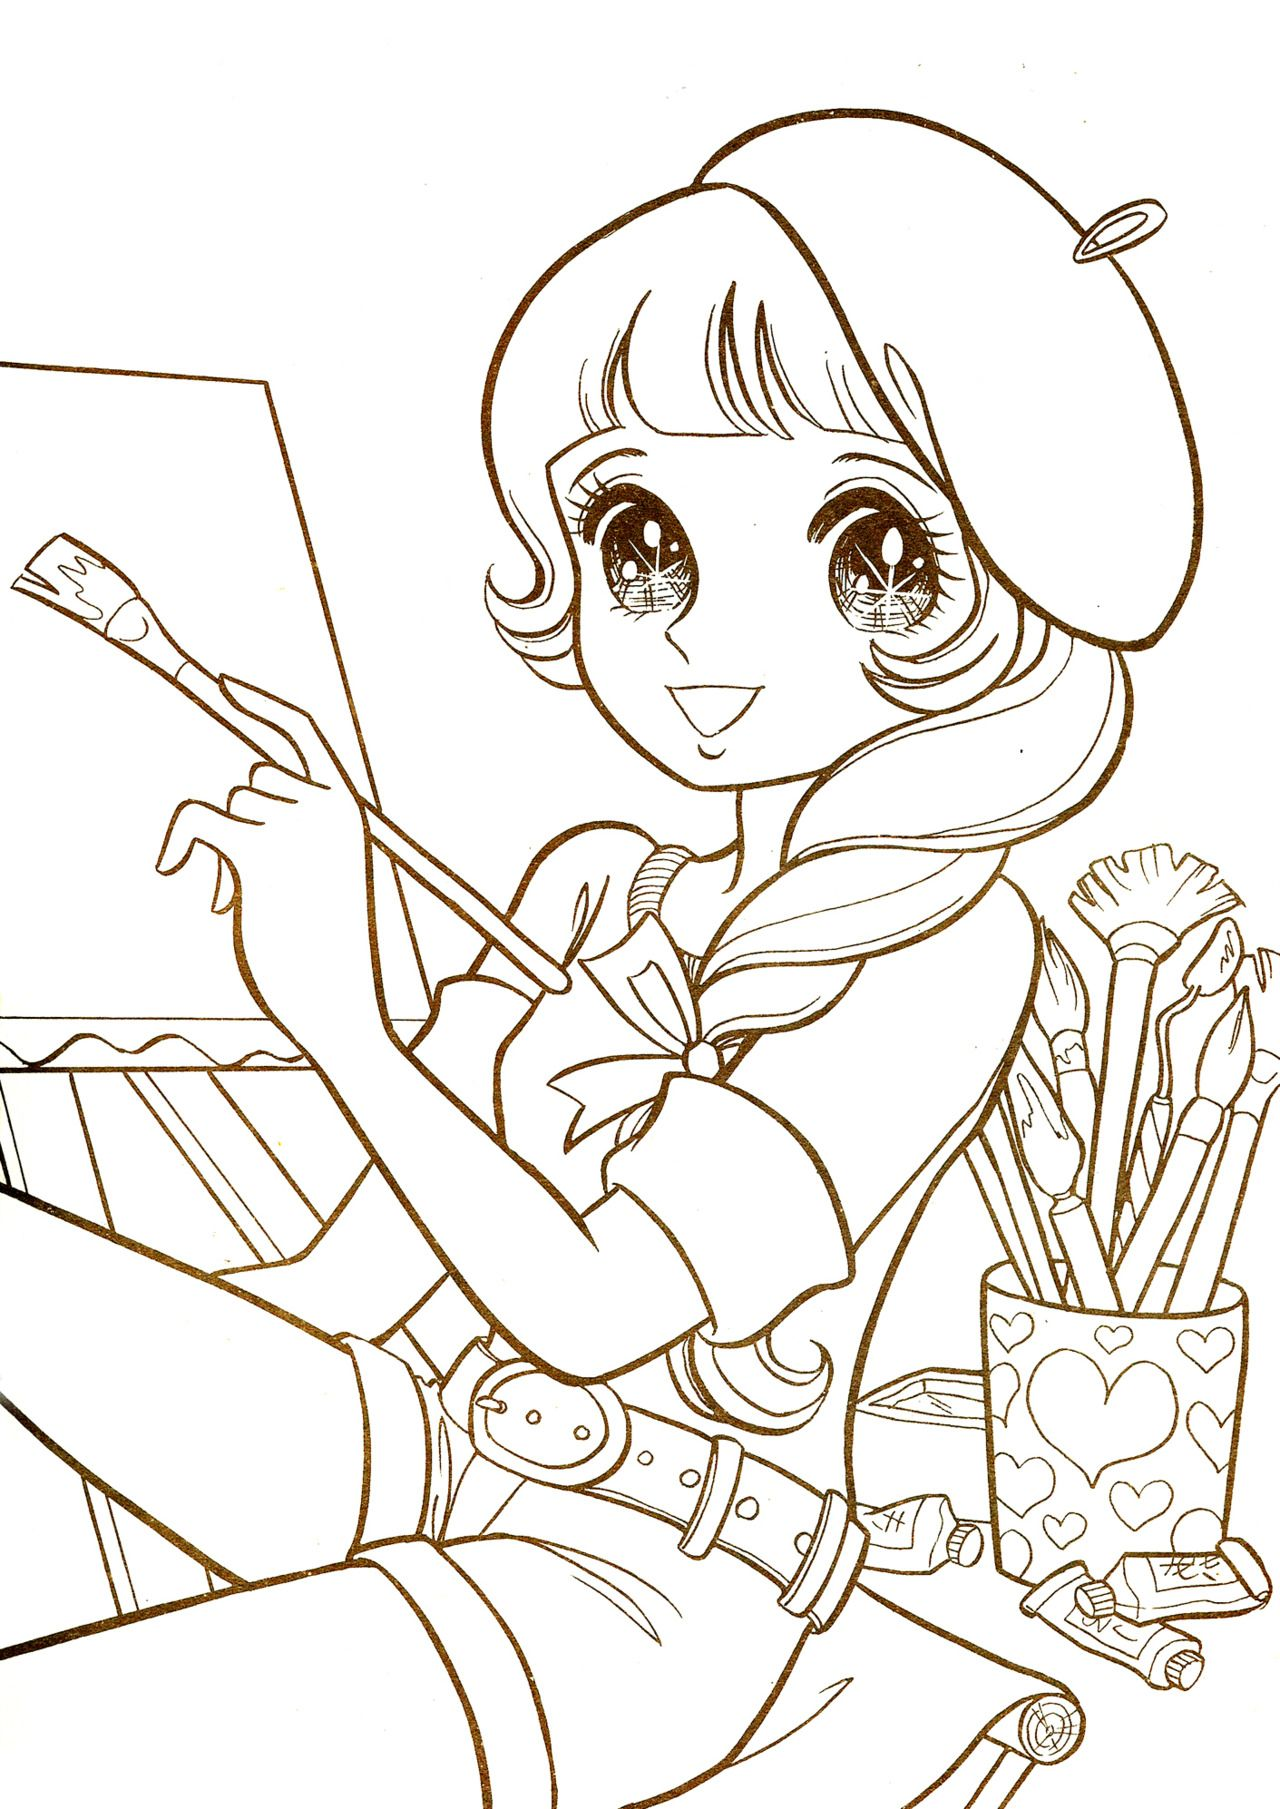 Aeromachia Shojo Manga No Memory This Is Few Coloring Pages From This Vintage Coloring Book Manga Coloring Book Vintage Coloring Books Cute Coloring Pages